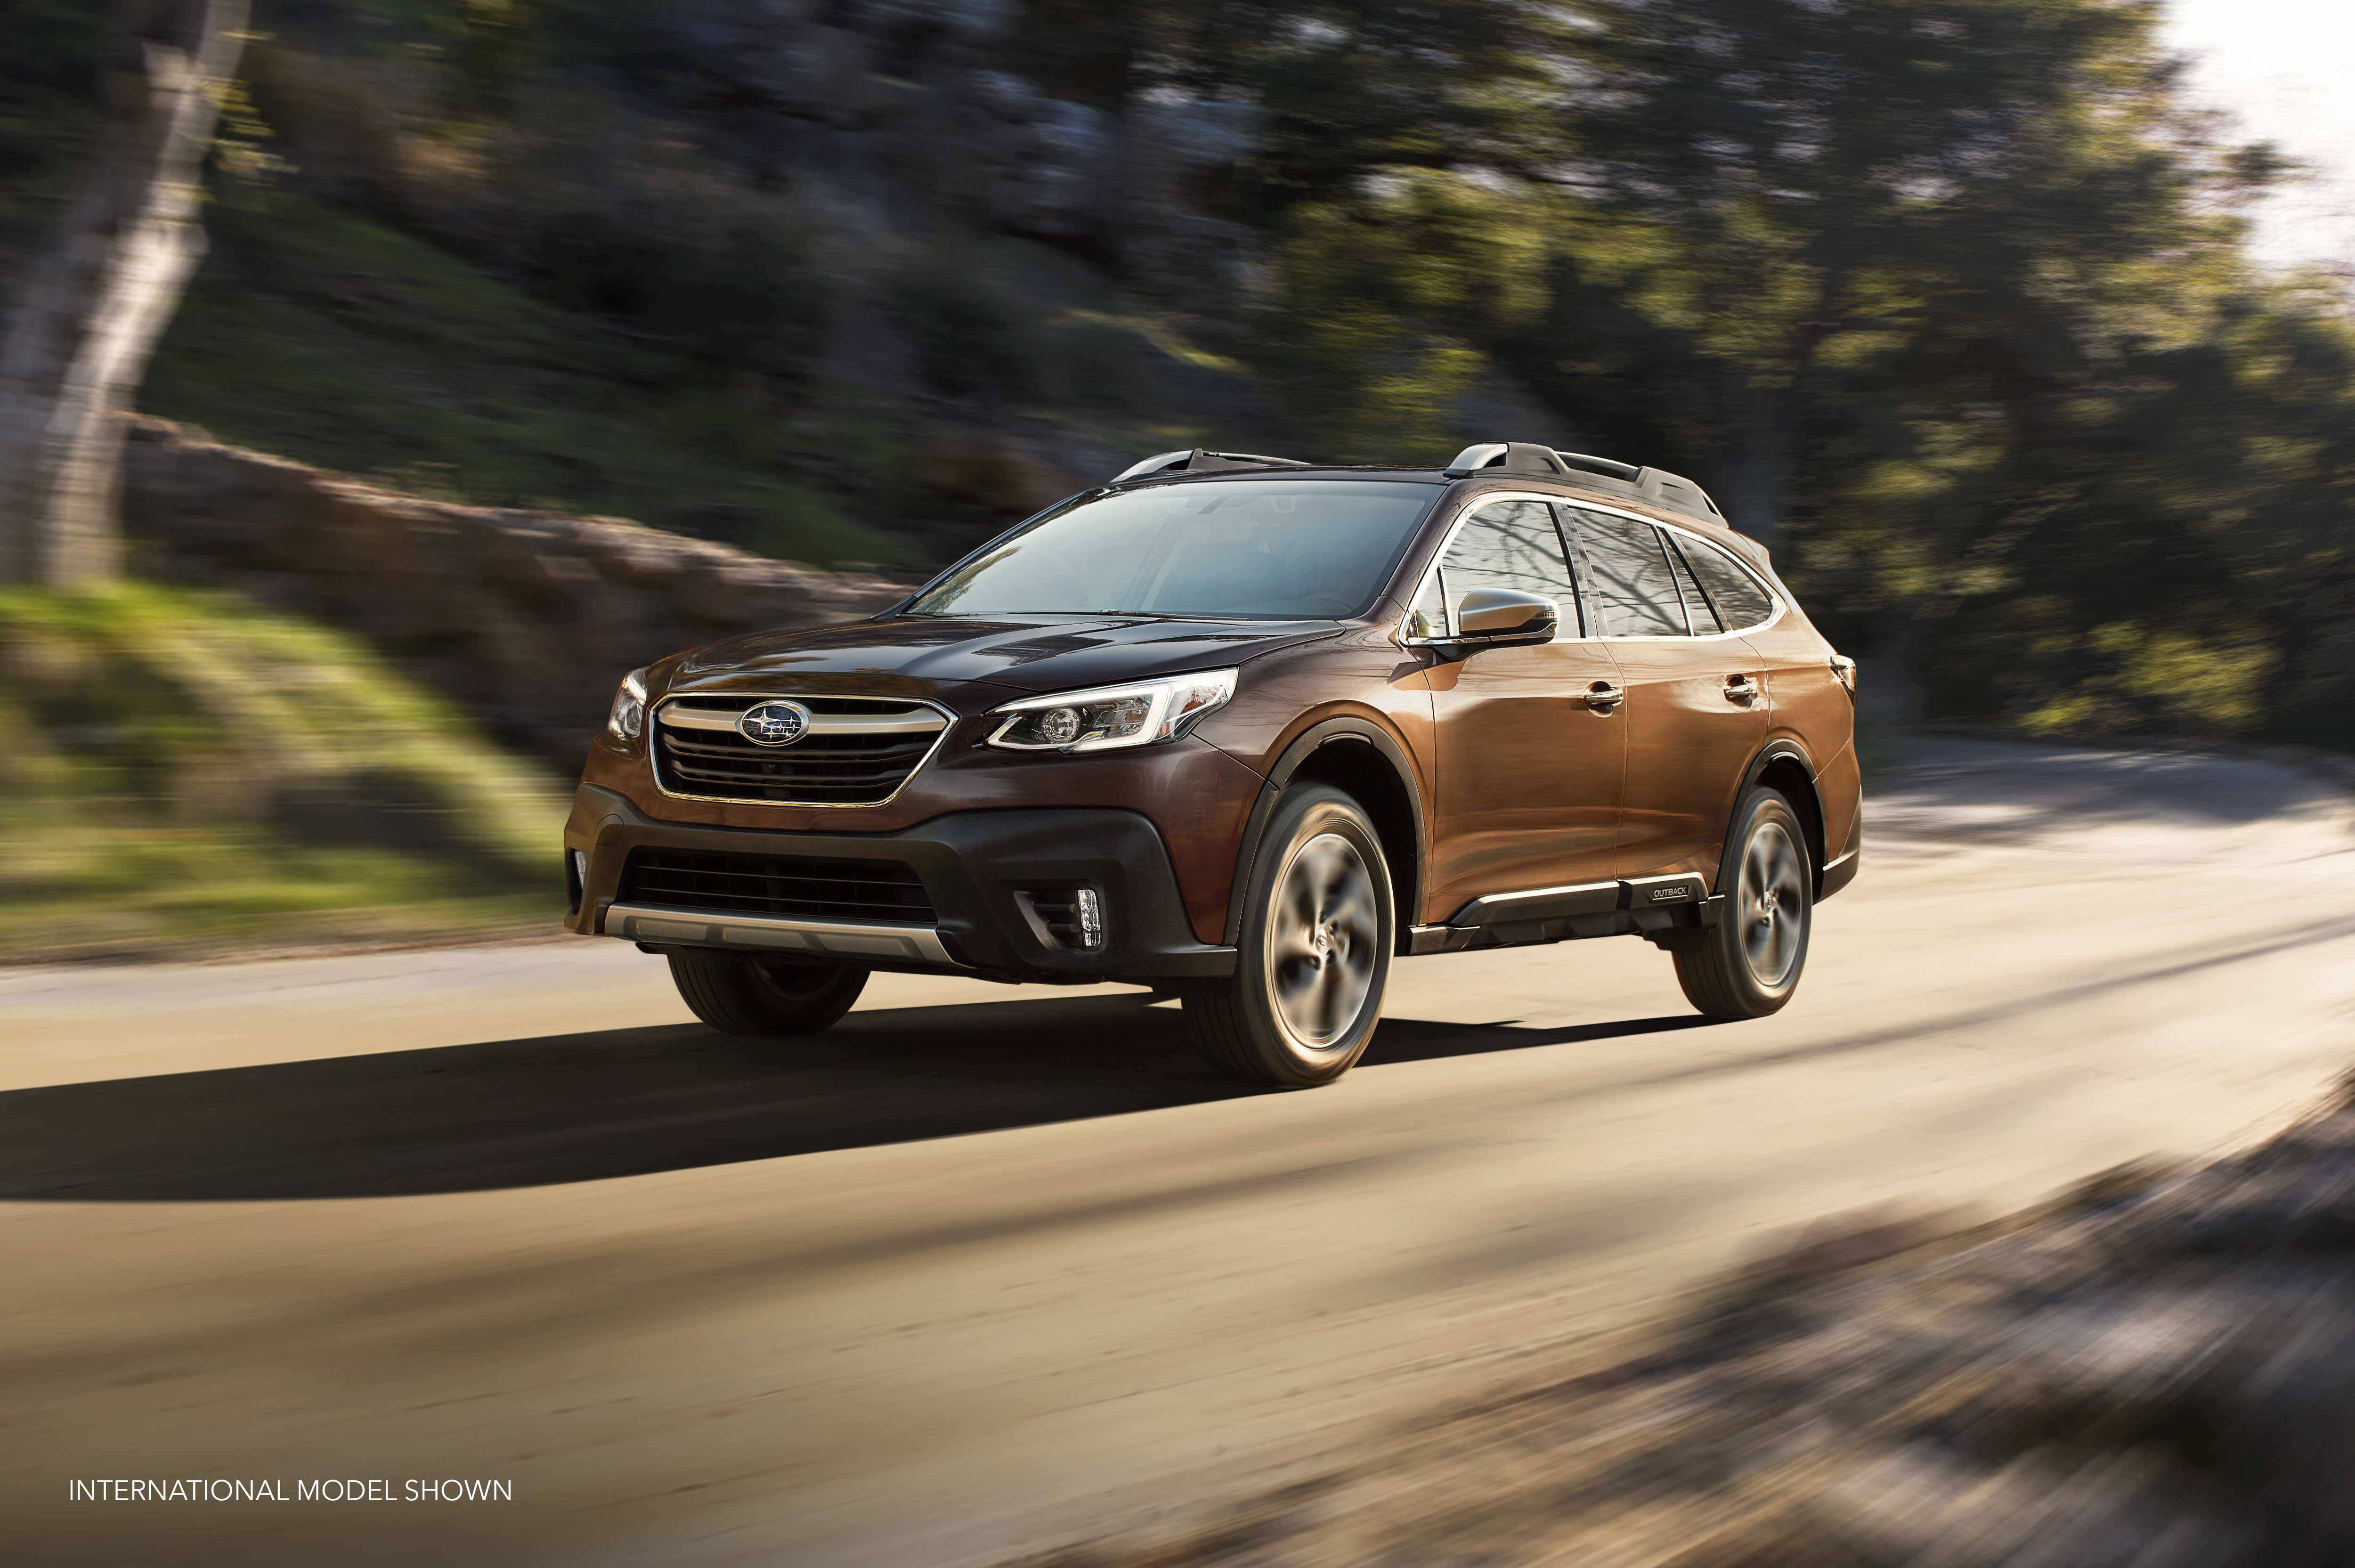 62 All New Subaru 2020 Plan Redesign And Review